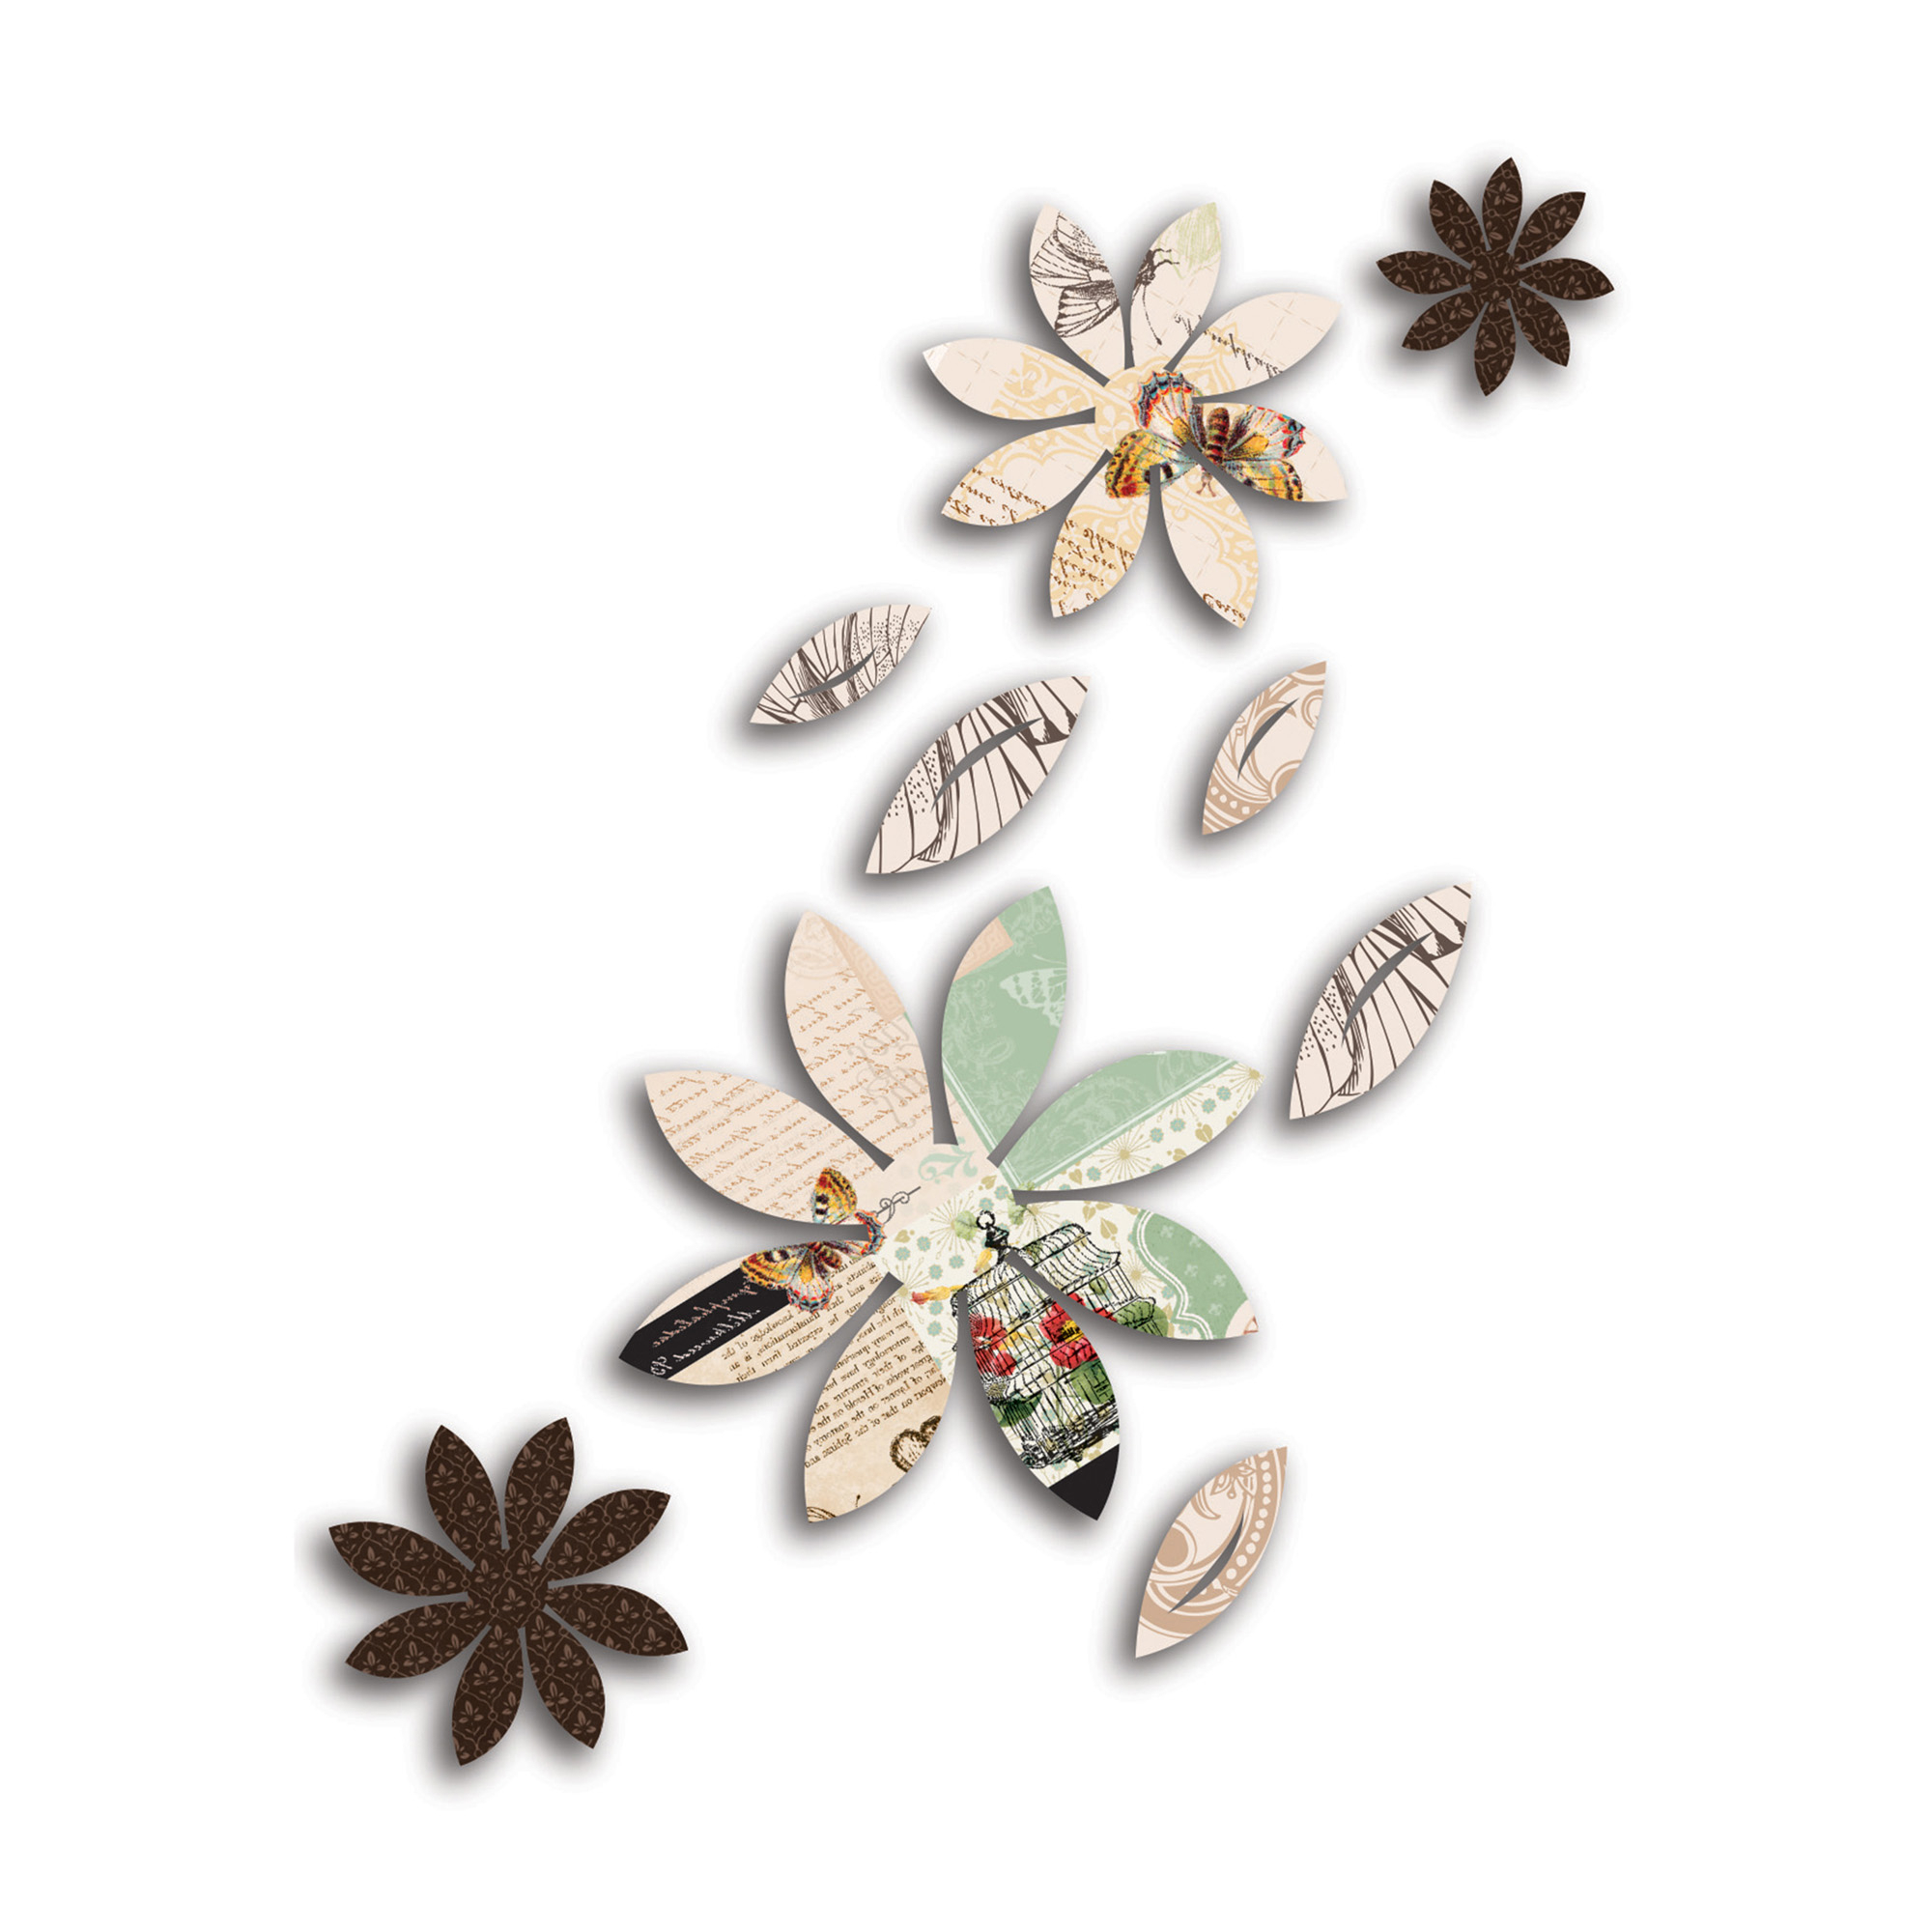 Mariposa 9 Piece Wall Decor Inside Fashionable 3D Wall Decor Brown Flowers With Mariposa Print, 9 Piece – Walmart (View 14 of 20)